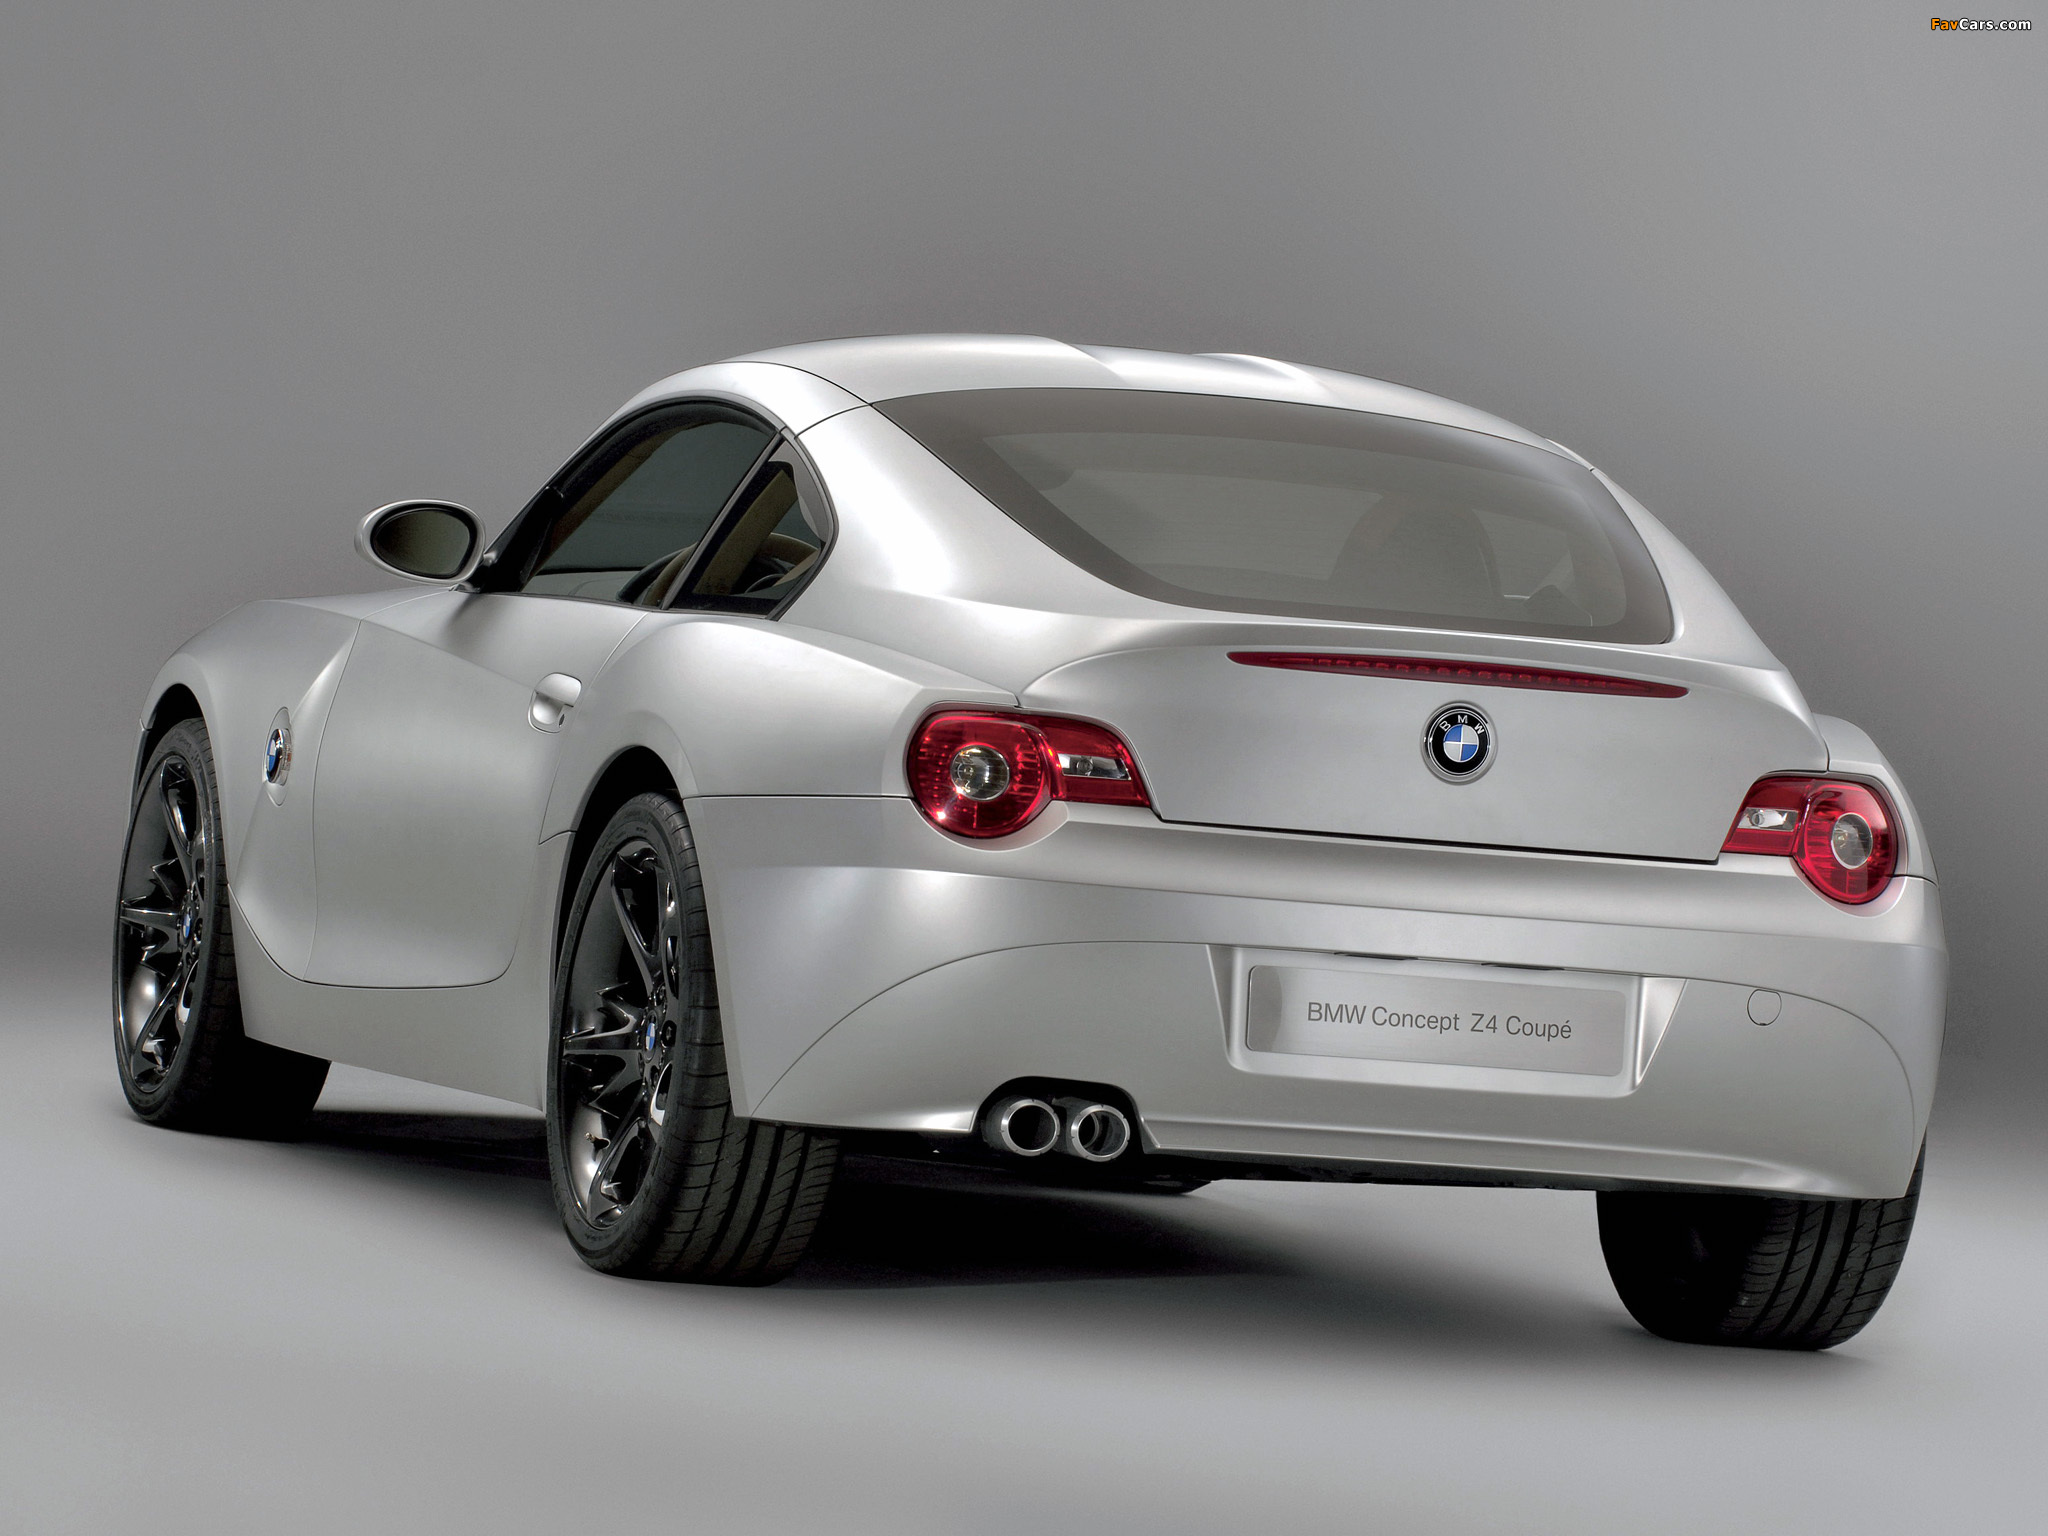 BMW Z4 Coupe Concept (E85) 2005 wallpapers (2048 x 1536)